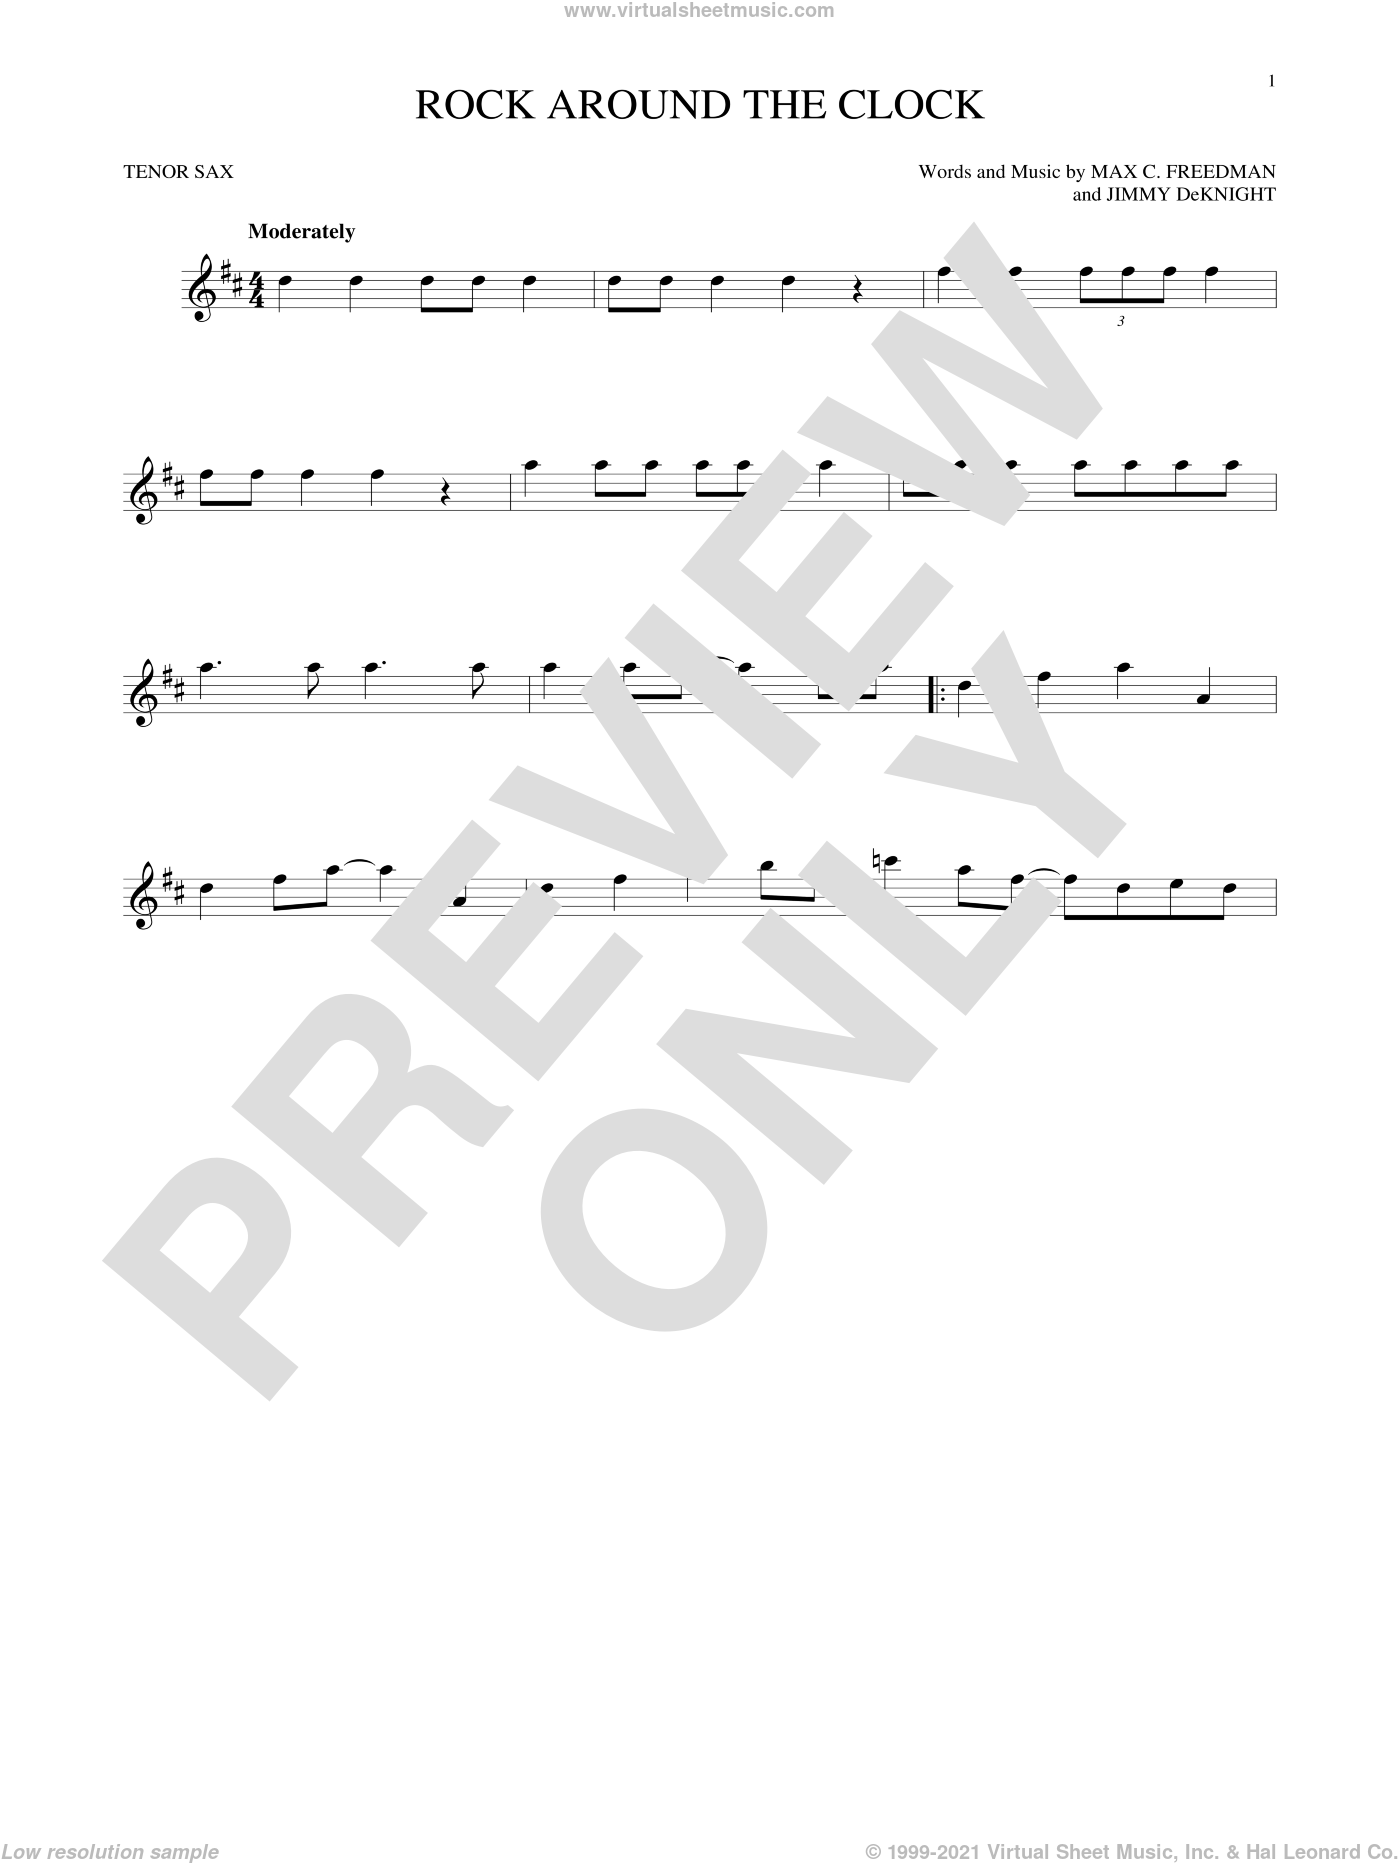 Rock Around The Clock sheet music for tenor saxophone solo by Bill Haley & His Comets, Jimmy DeKnight and Max C. Freedman, intermediate skill level